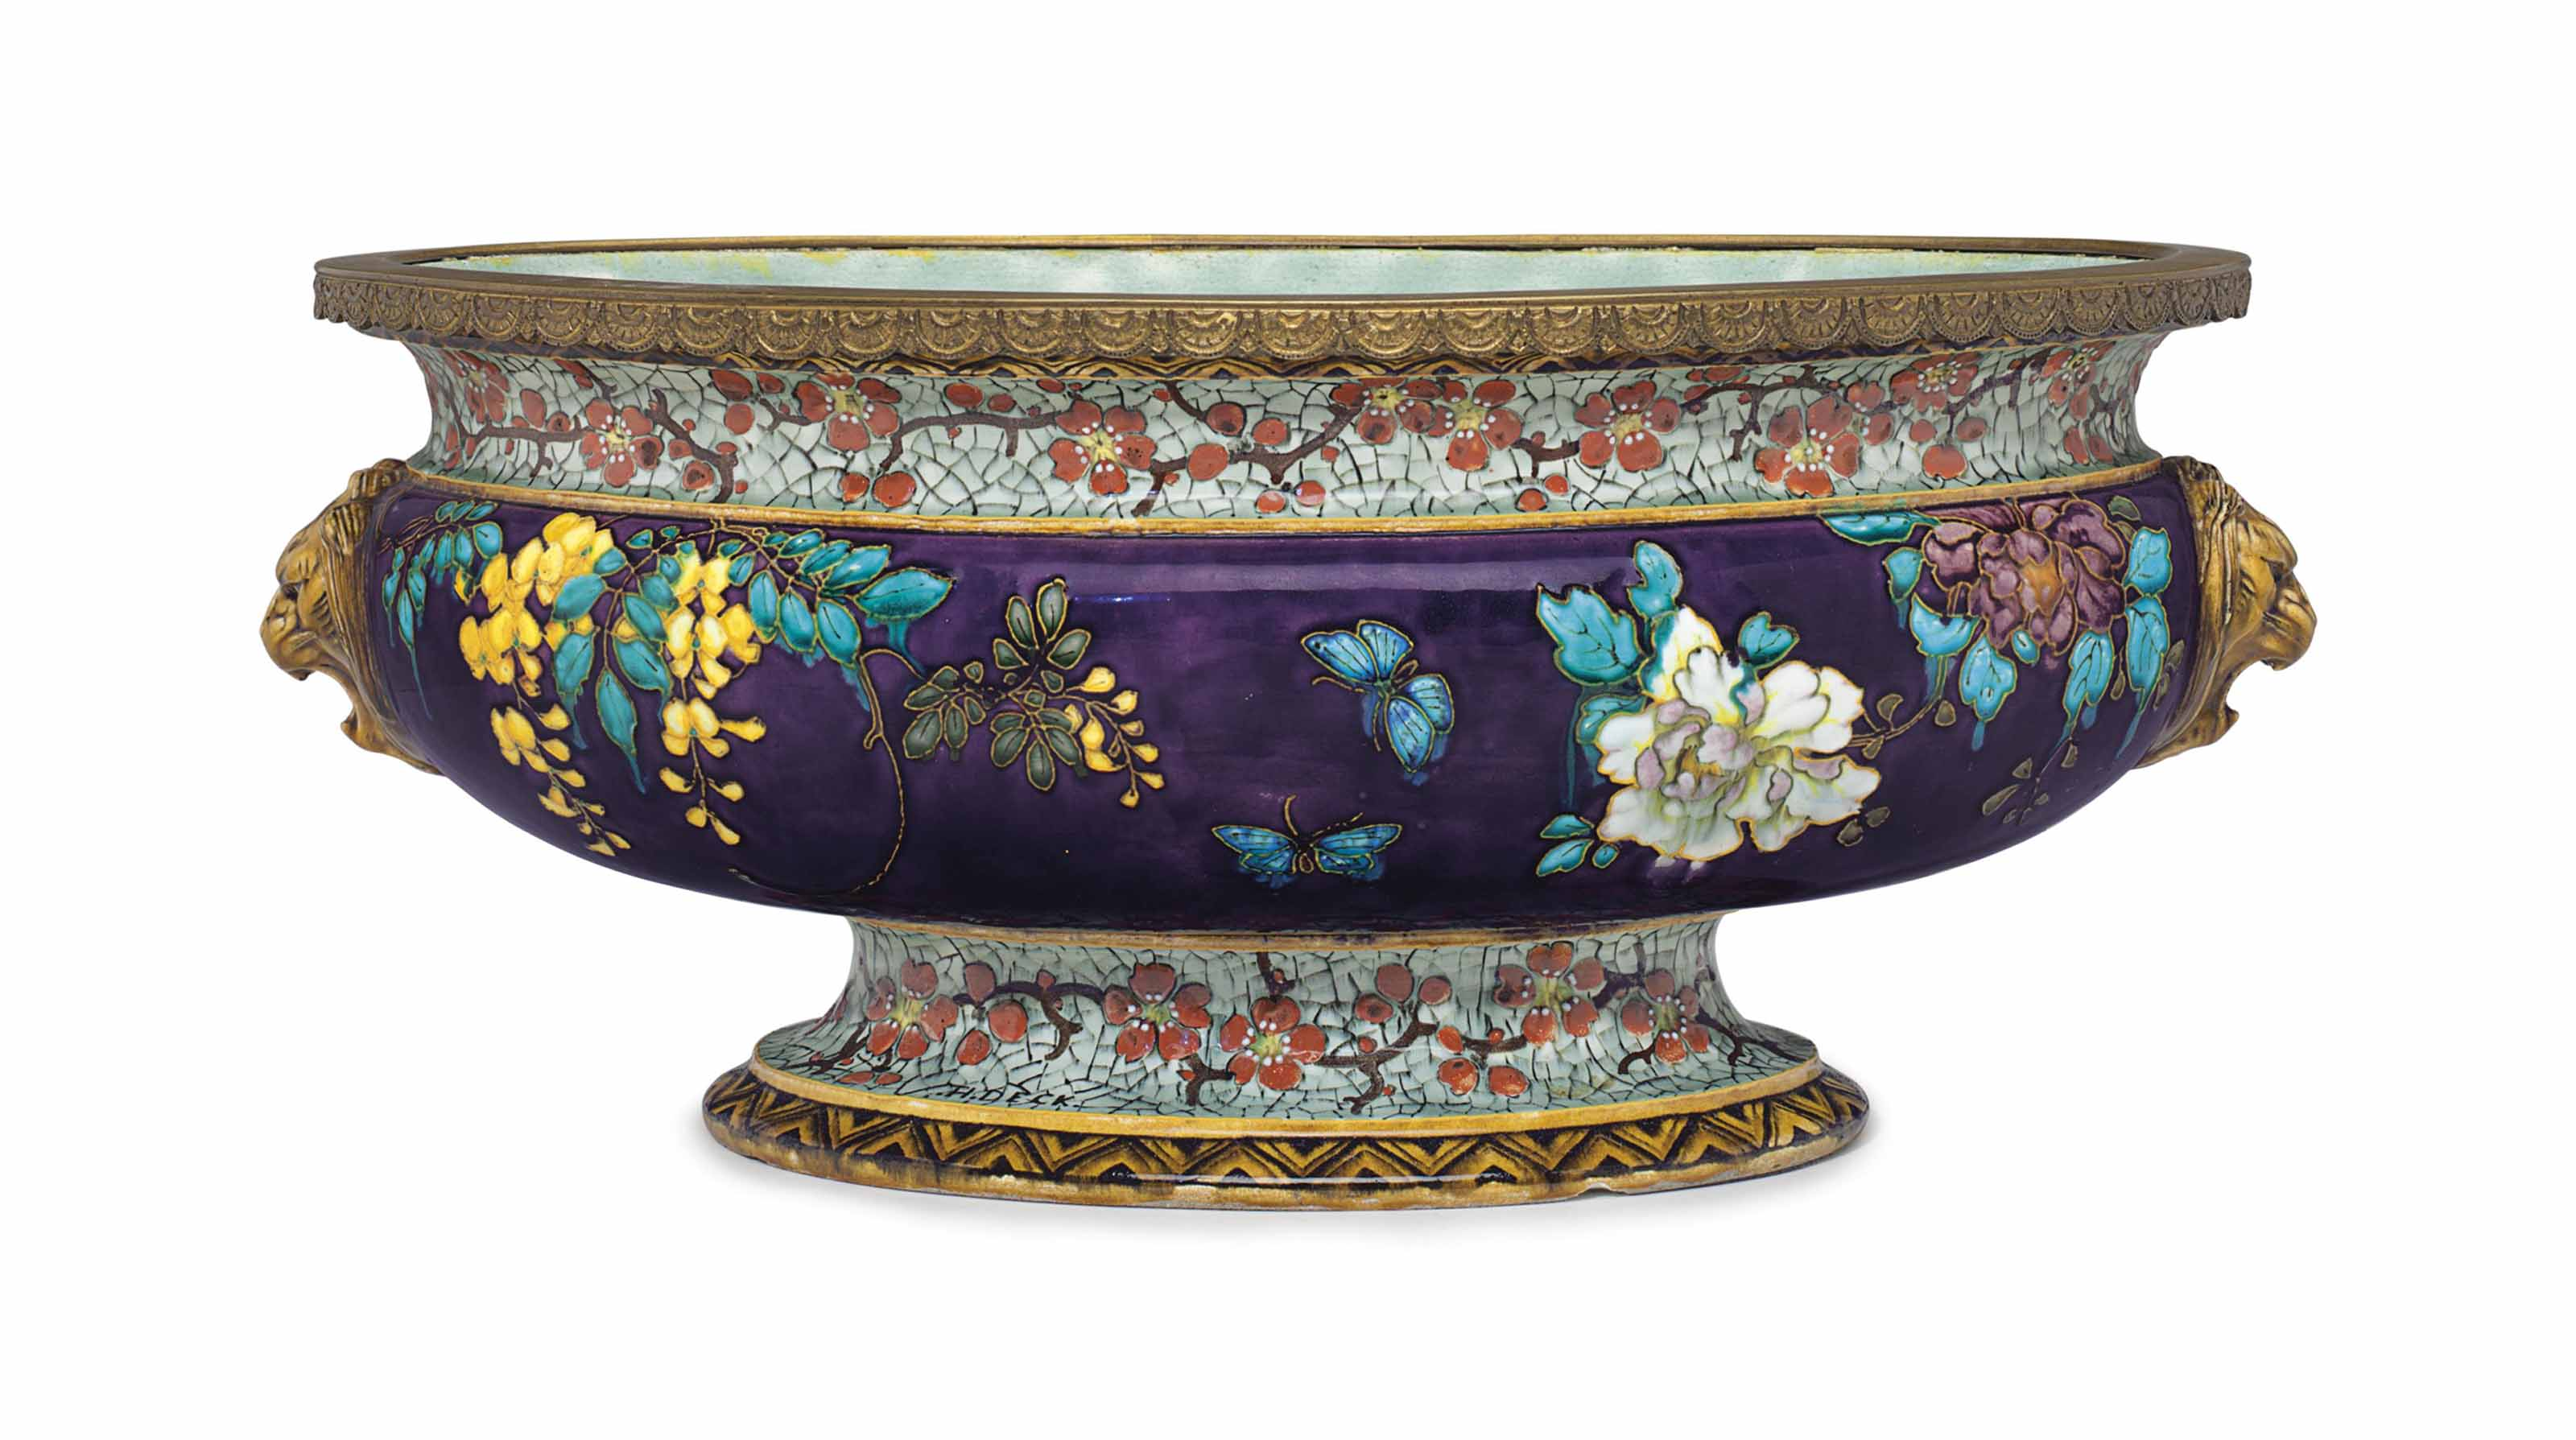 AN ORMOLU-MOUNTED THEODORE DECK FAIENCE AUBERGINE AND 'CRACKED-ICE' CENTERBOWL